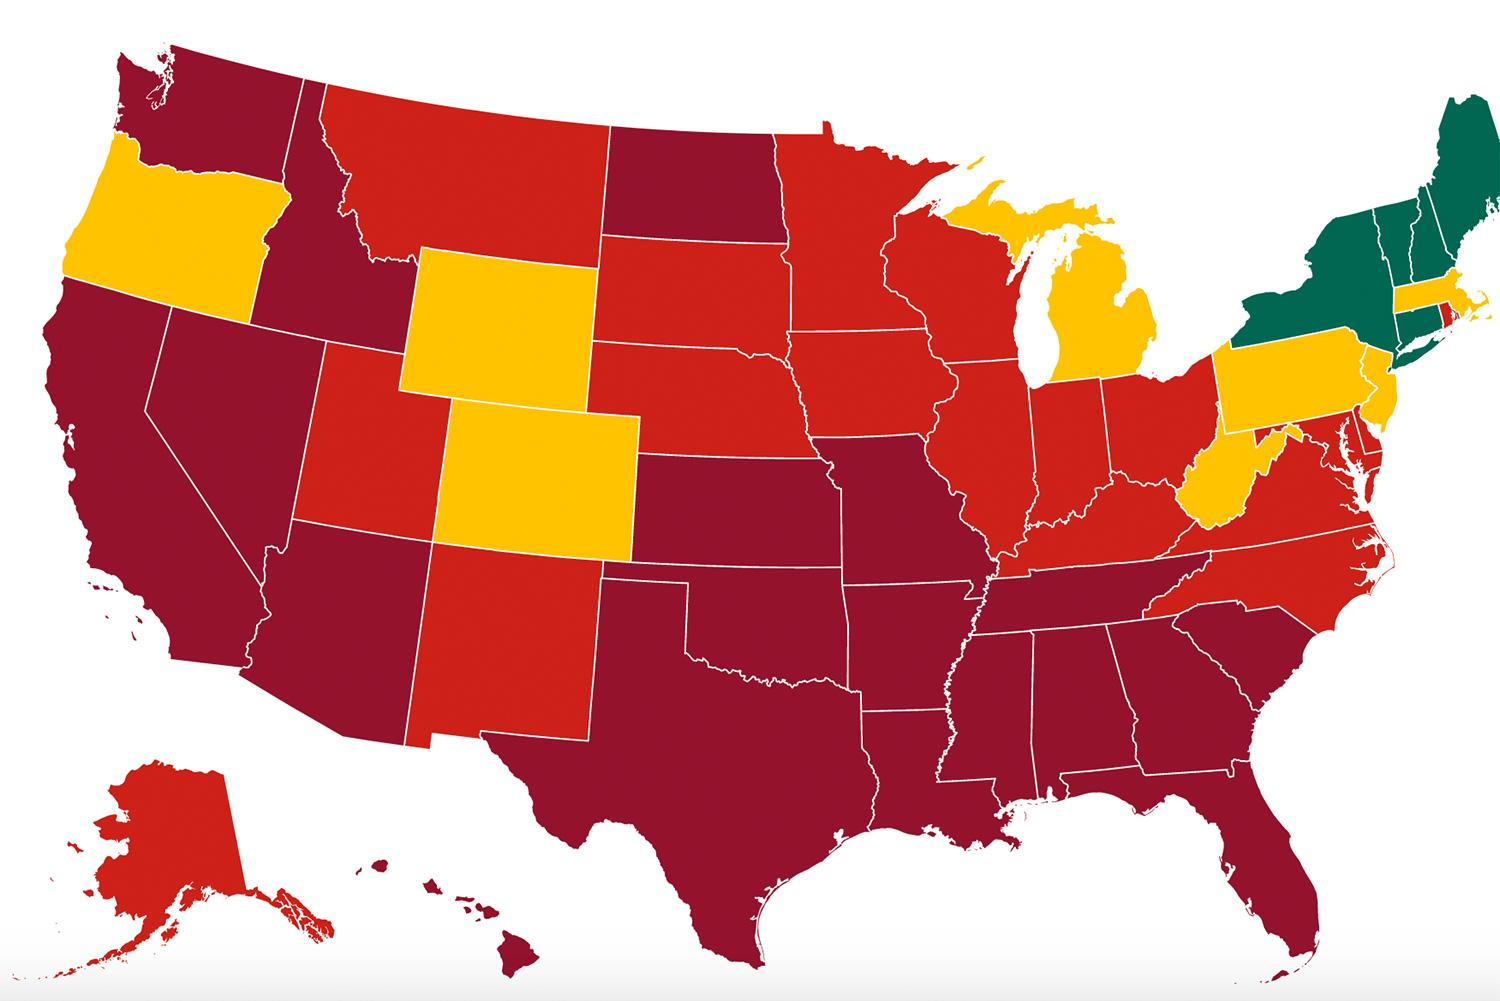 Each state's progress towards reduction in symptoms and cases, health system readiness, and increased testing. The image shows a map of the united states with four colors according to outbreak status. SOURCE: Covid Exit Strategy